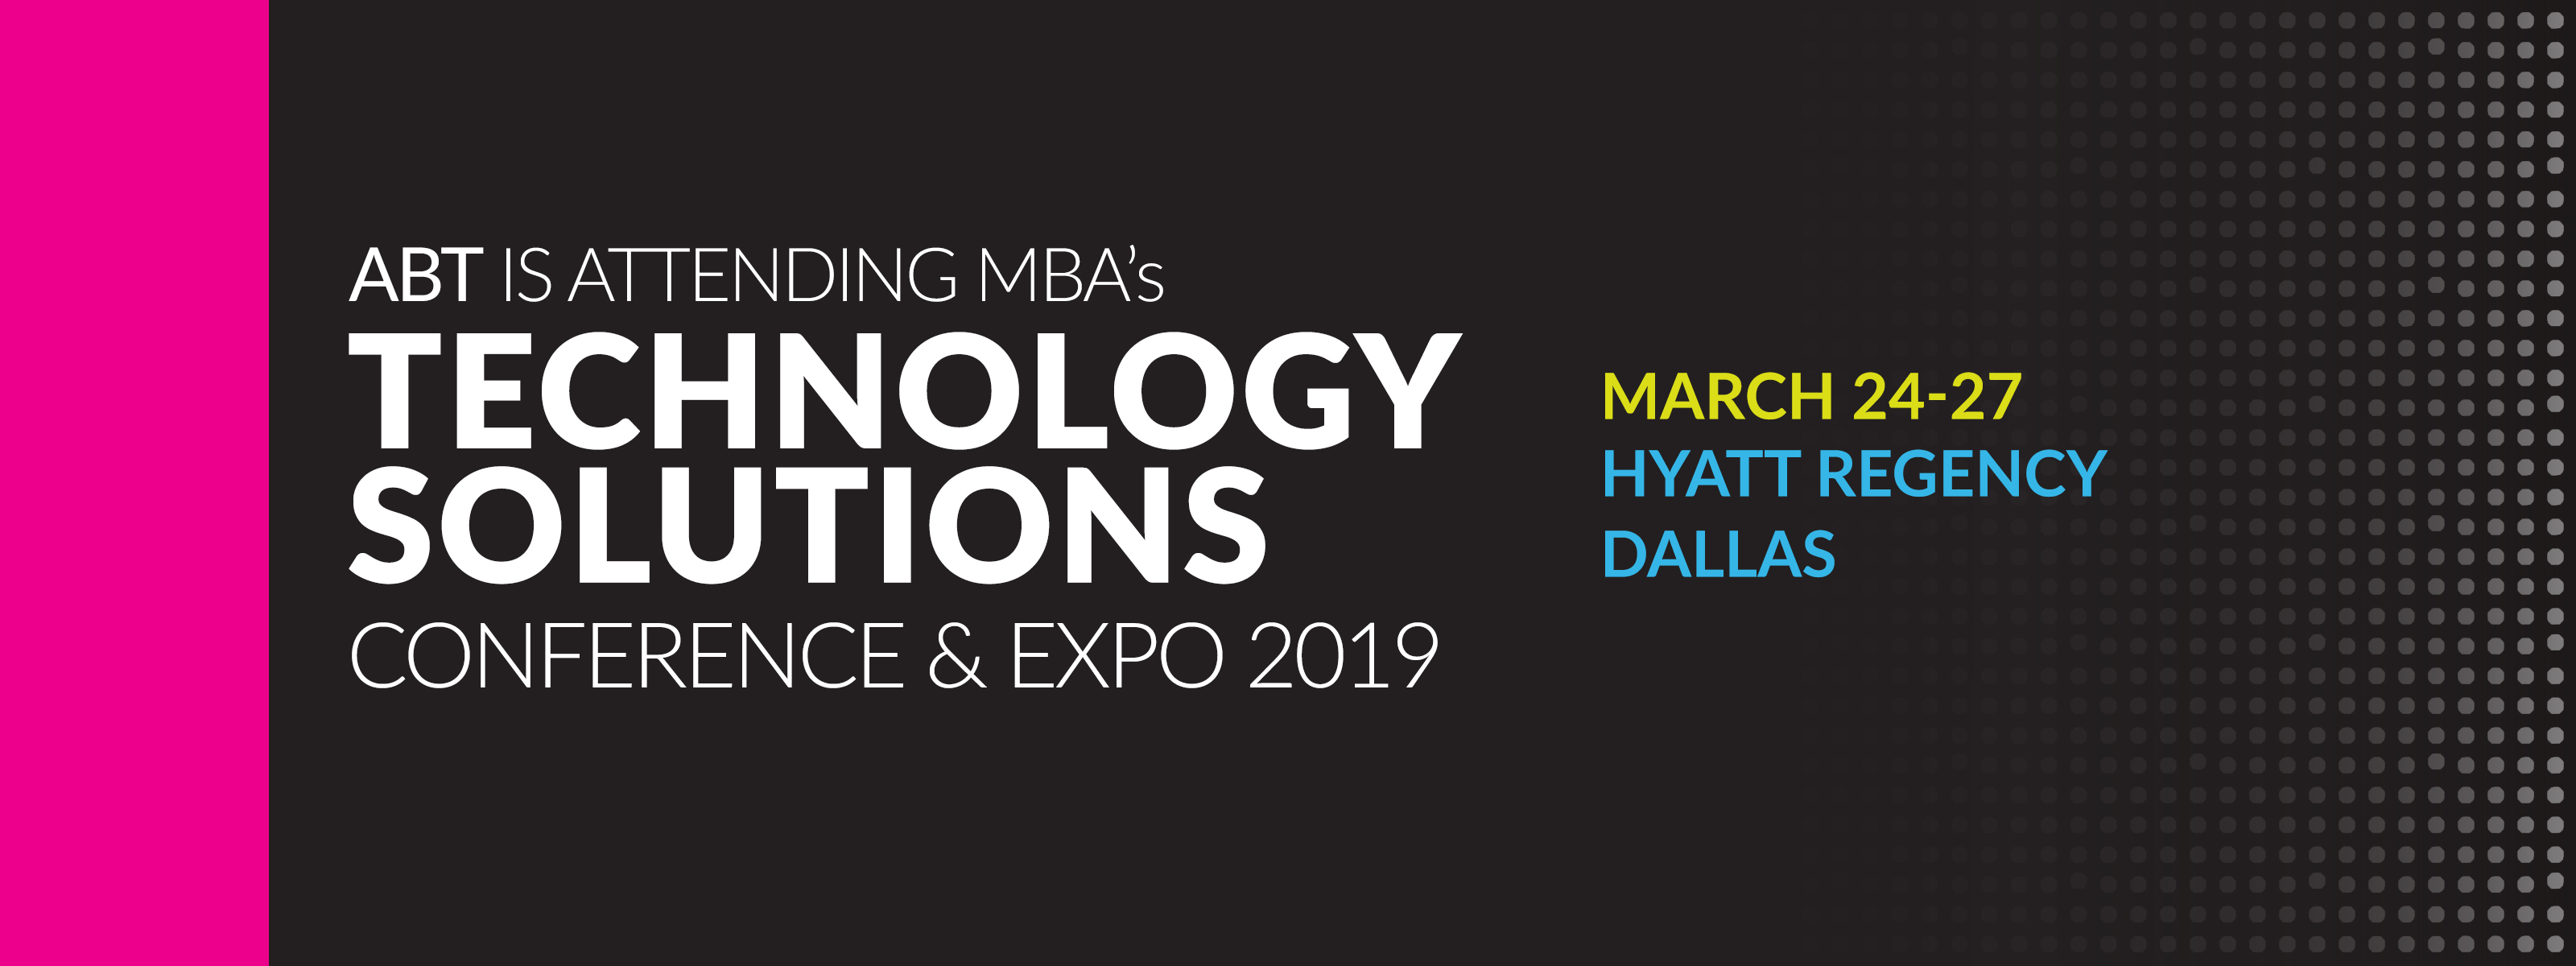 ABT at MBA Tech19 in Dallas with SMART E-Mail Signatures for Mortgage